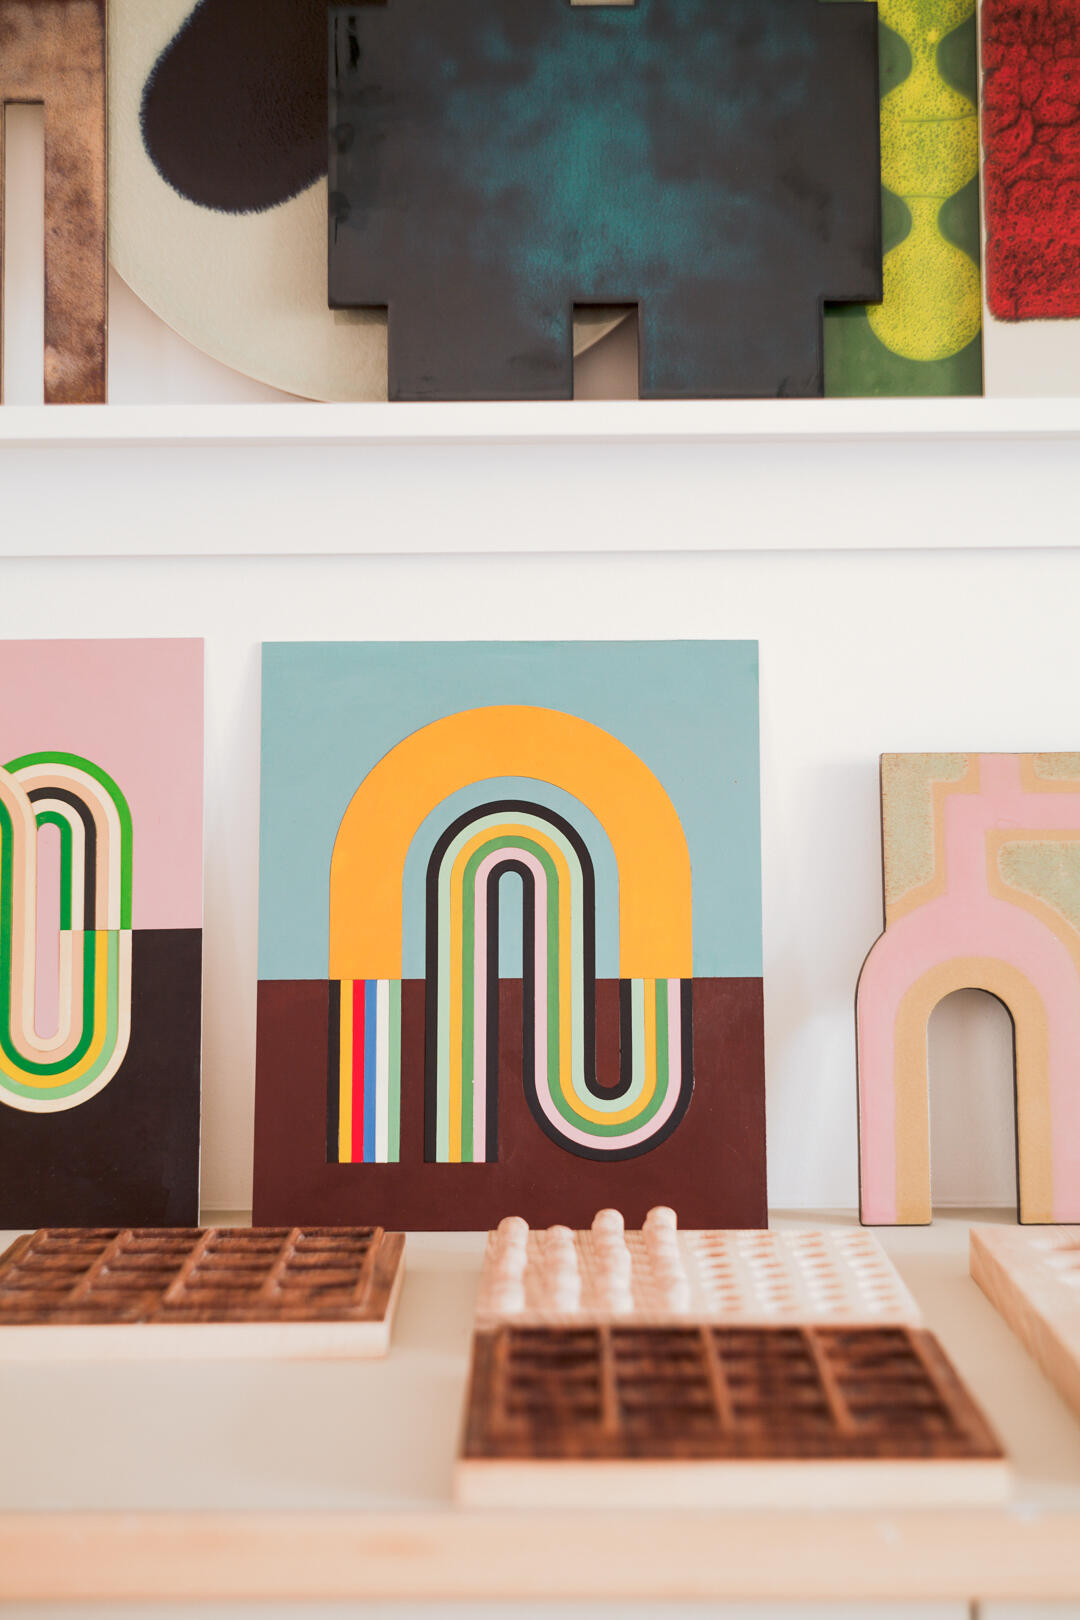 Colourful woodwork and sculpture in studio